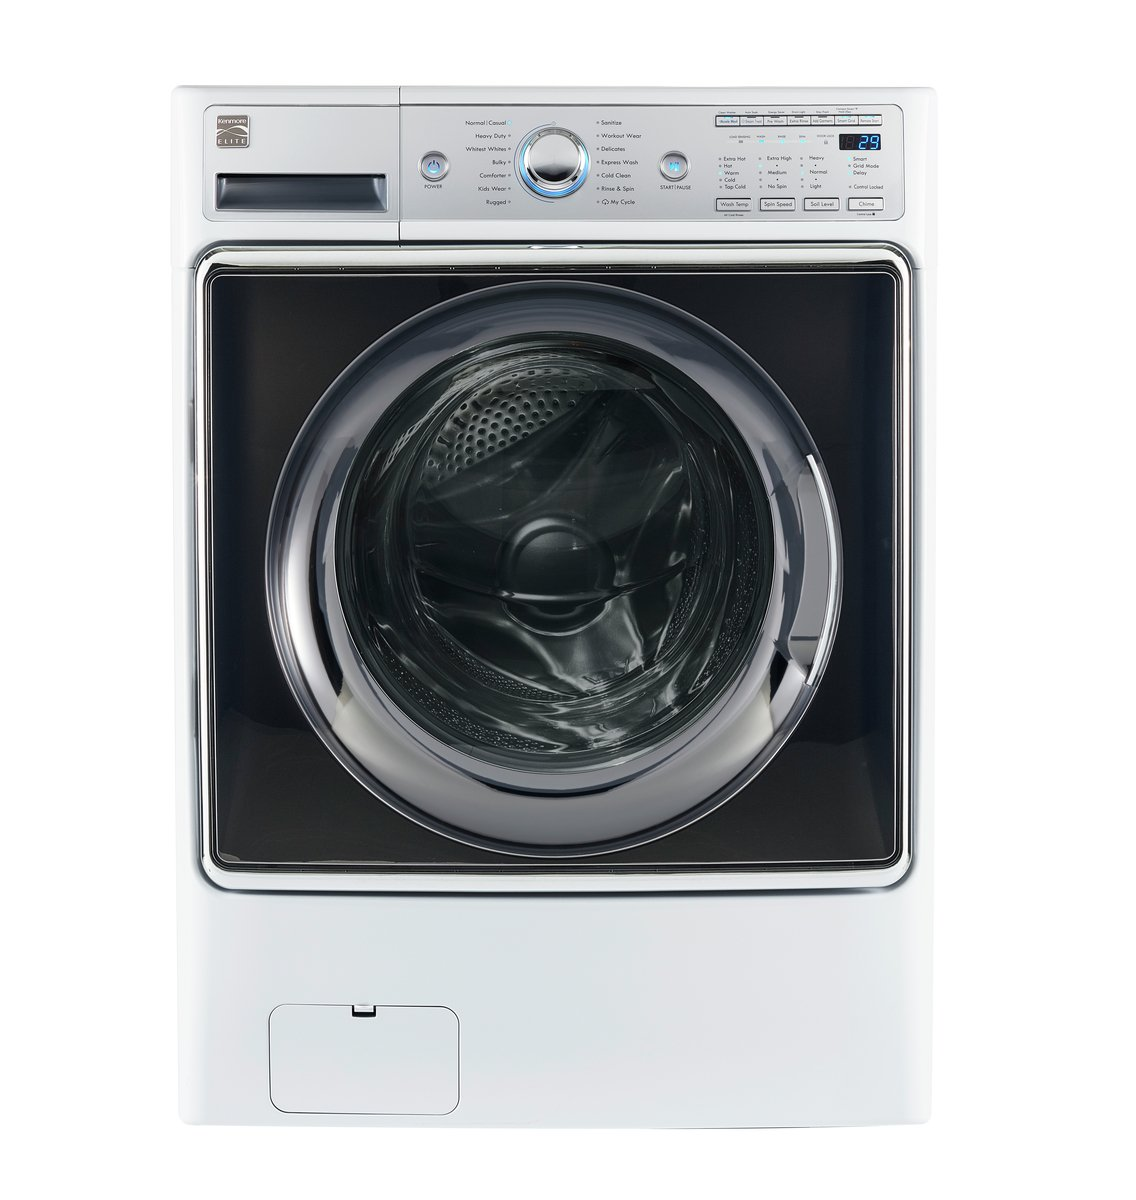 Kenmore Smart 41982 5.2 cu.ft. Front Load Washer with Accela Wash Technology in White  - Works with Amazon Alexa, includes delivery and hookup (Available in select cities only)